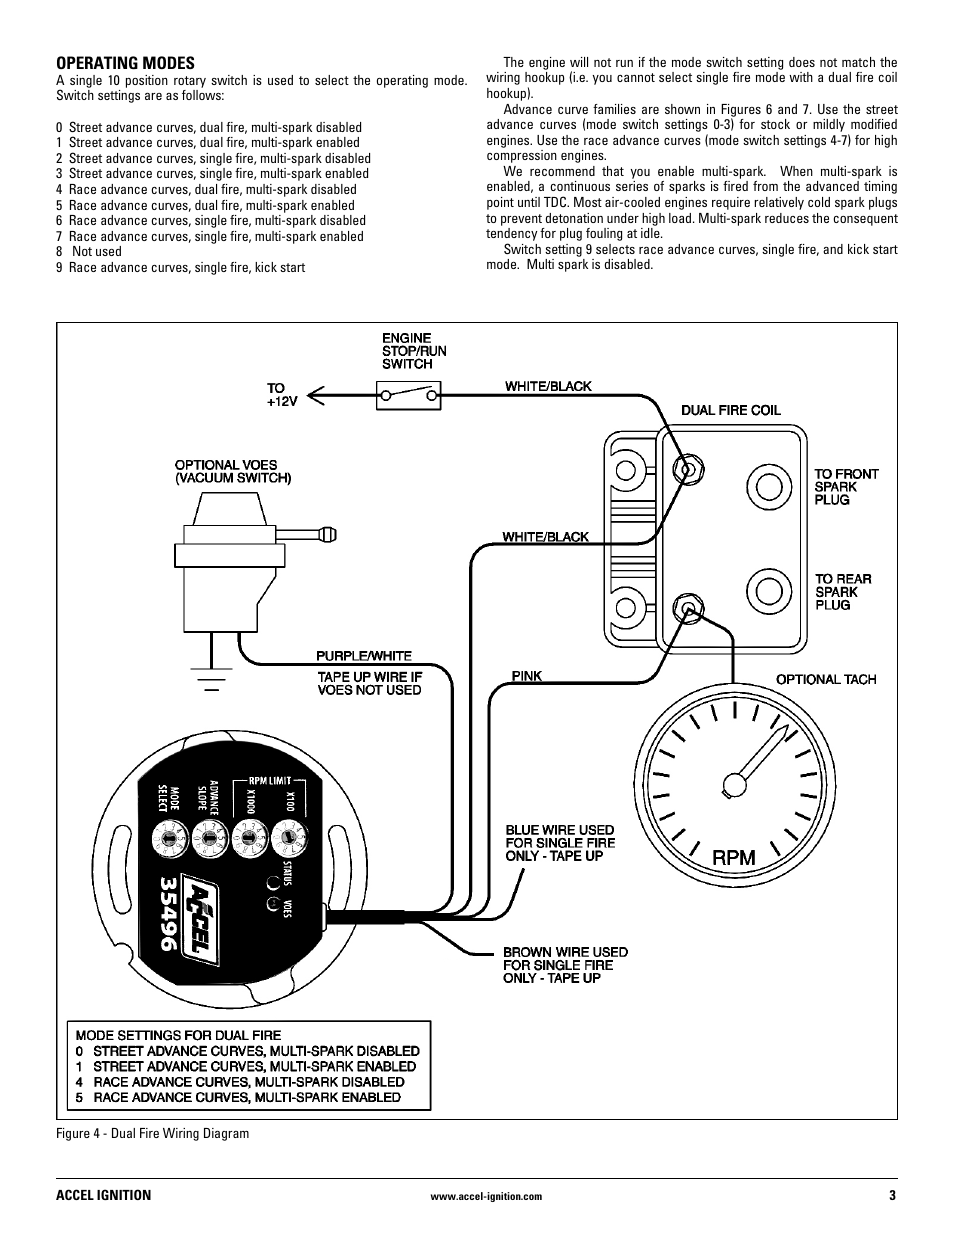 mallory ignition accel ignition 35496 page3 mallory ignition accel ignition 35496 user manual page 3 8 mallory ignition wiring diagram at alyssarenee.co